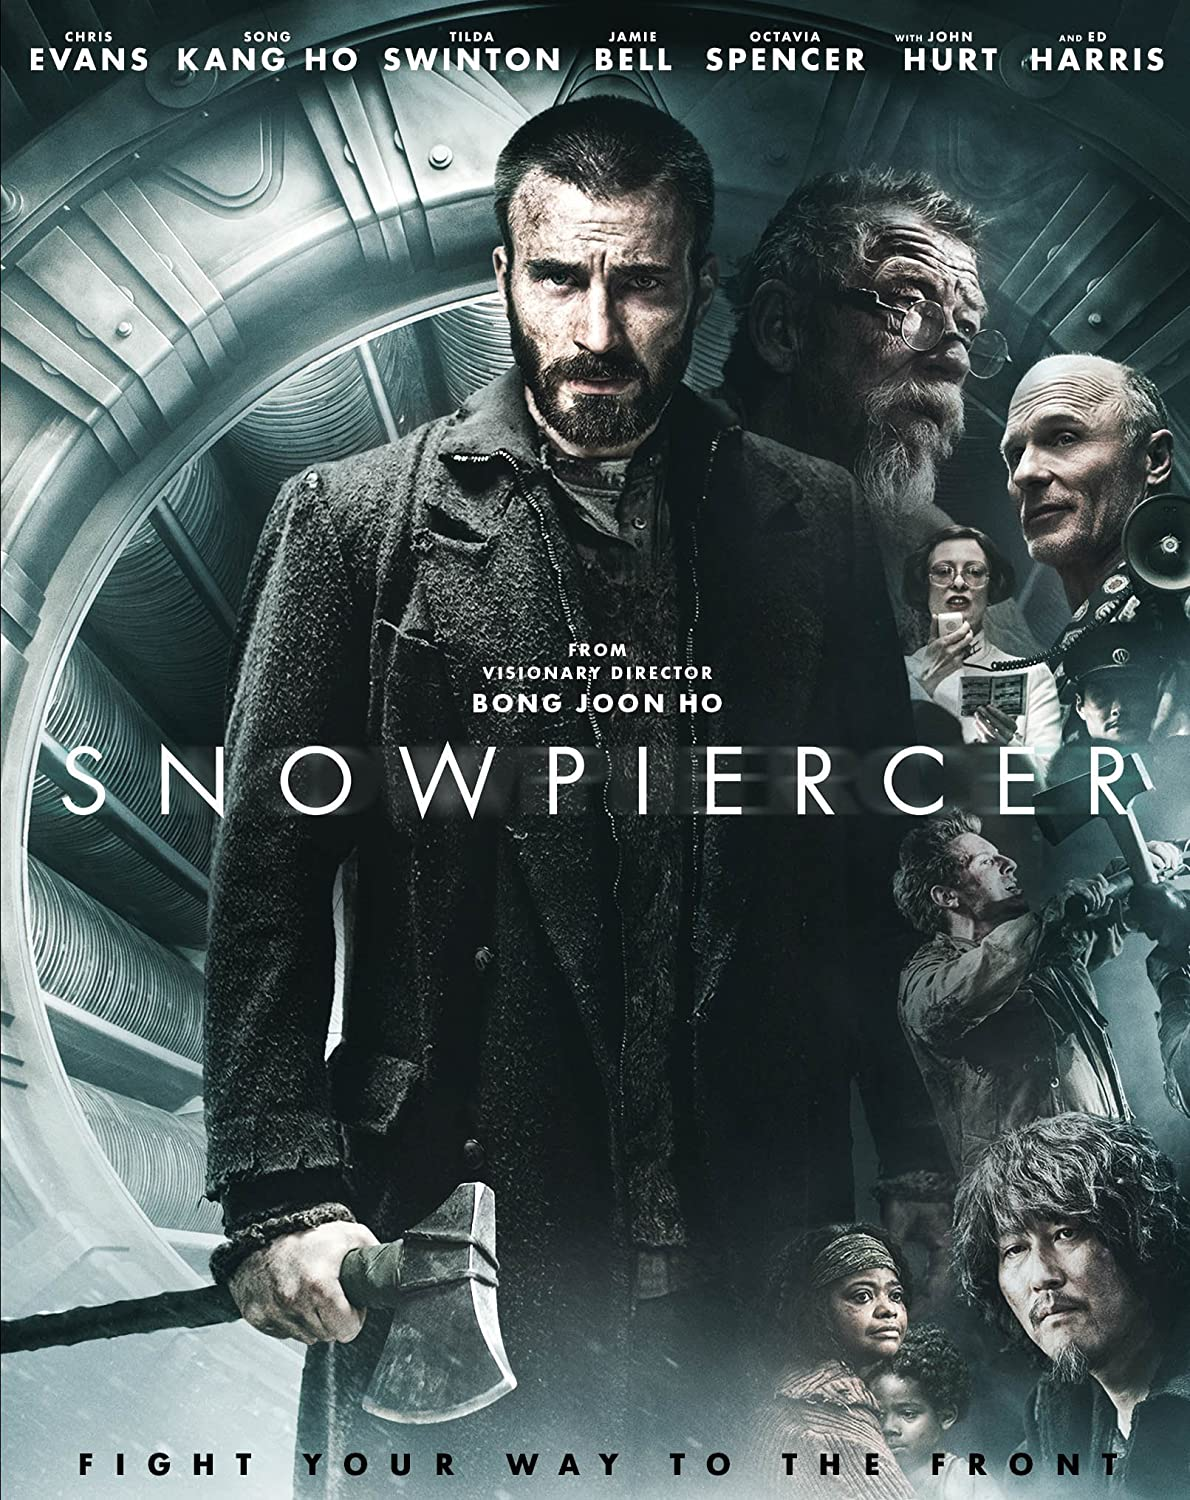 Amazon.com: Snowpiercer [Blu-ray]: Chris Evans, Tilda Swinton, Jamie Bell,  Ed Harris, Octavia Spencer, John Hurt, Bong Joon Ho: Movies & TV